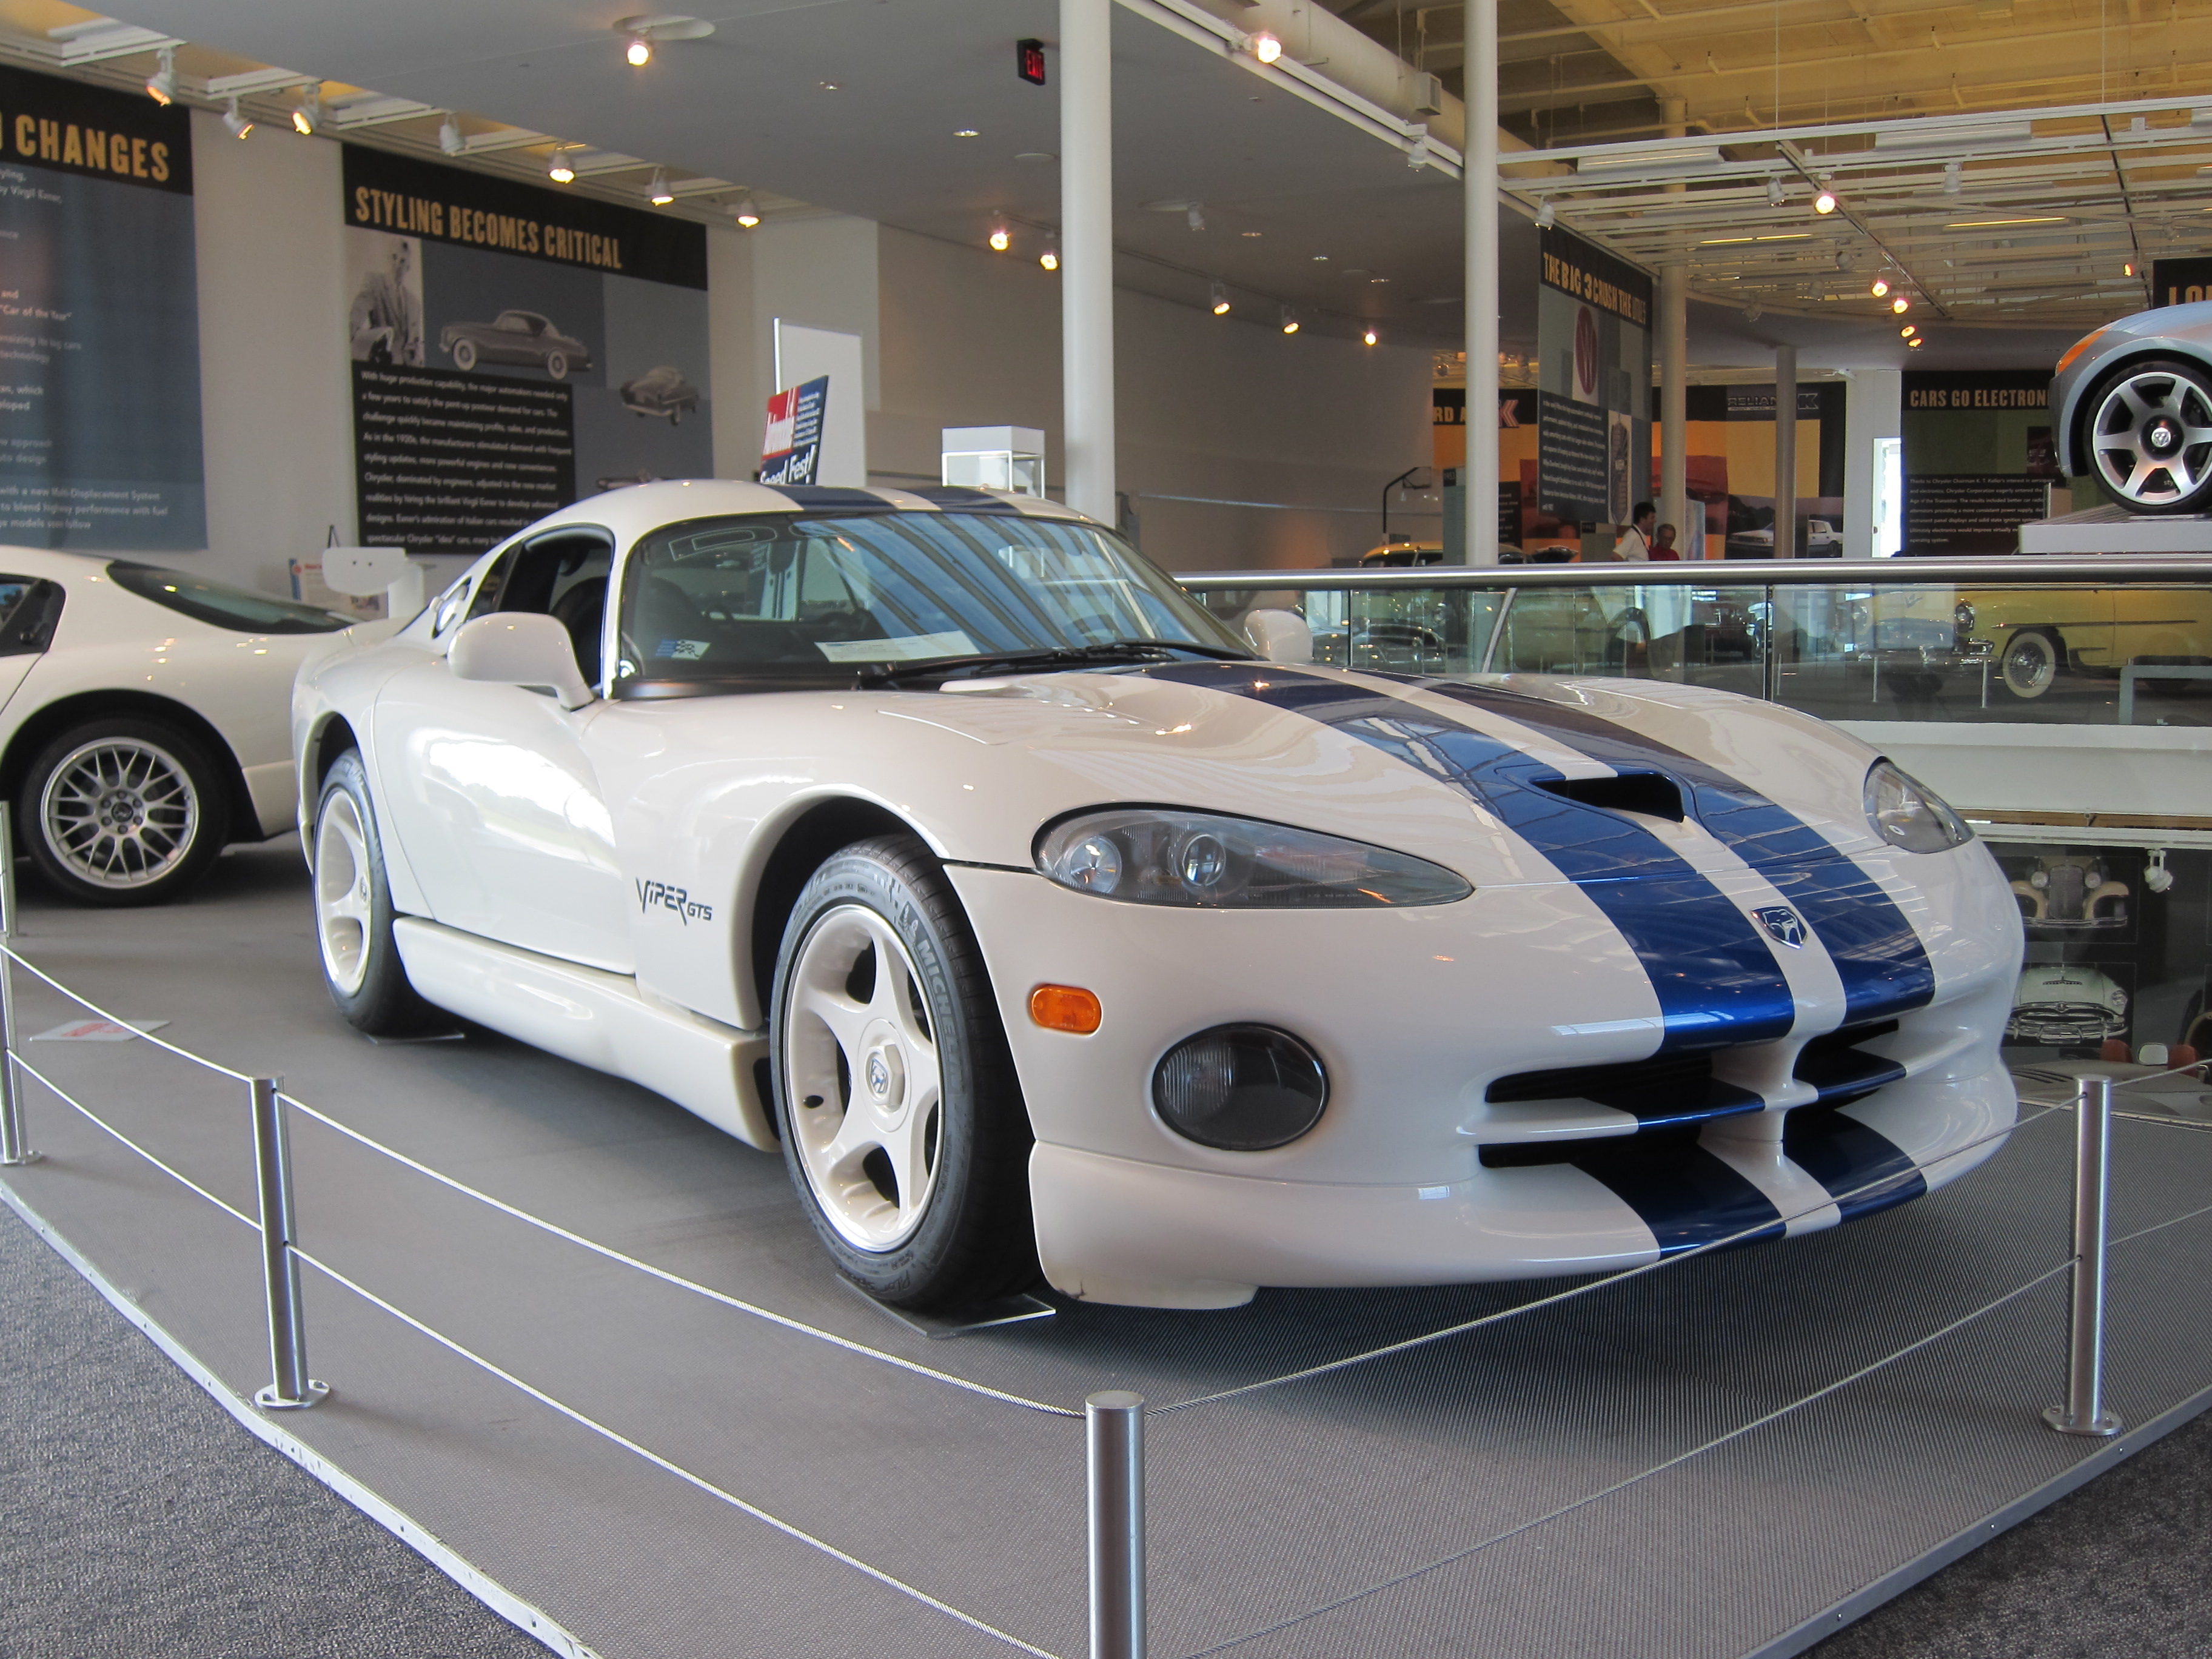 96 gts stone white with blue stripes only 3 were made